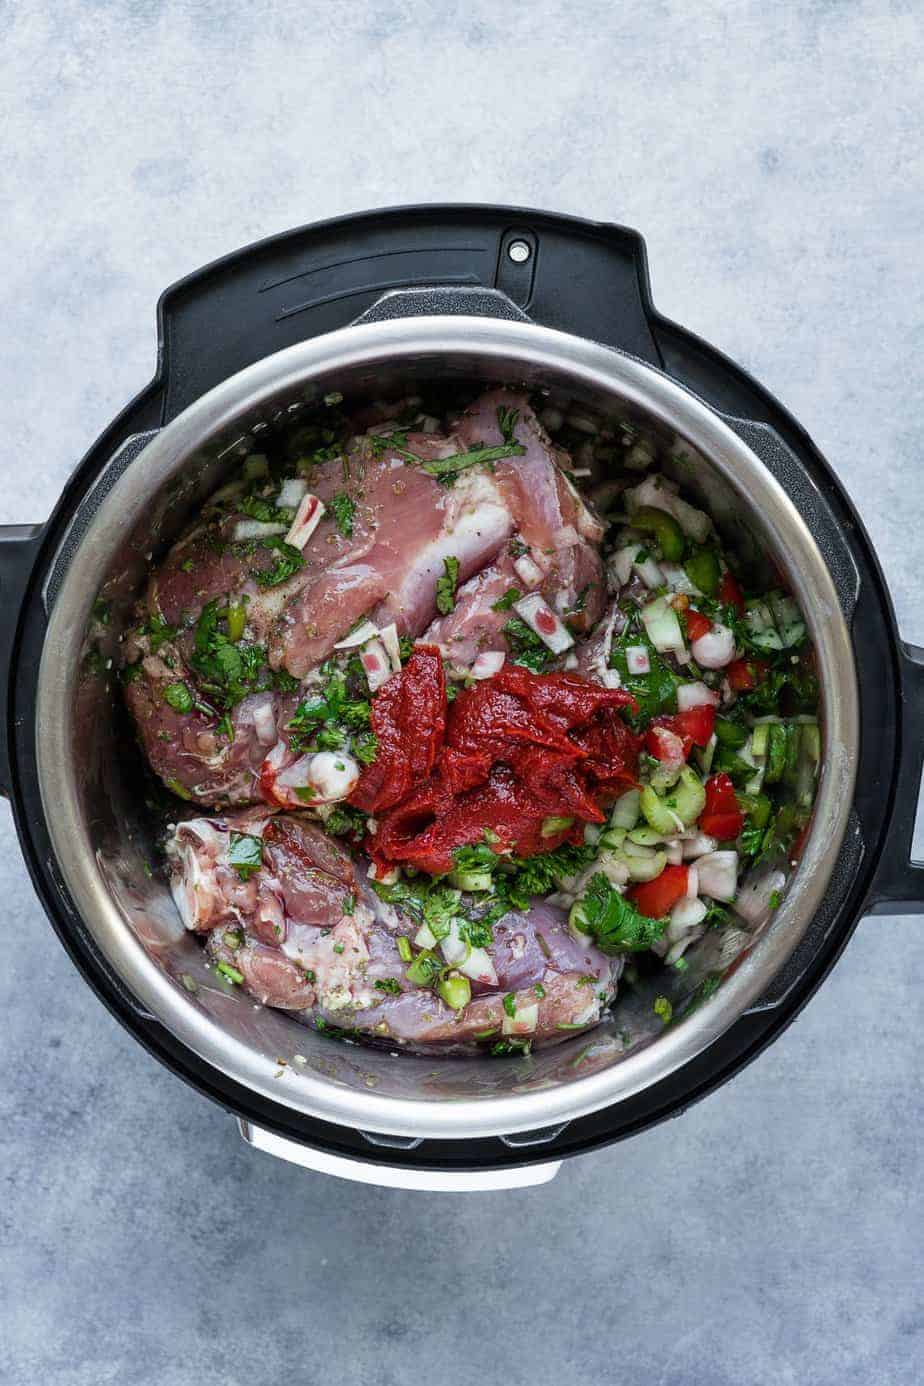 Adding the turkey thighs with the ingredients in the instant pot